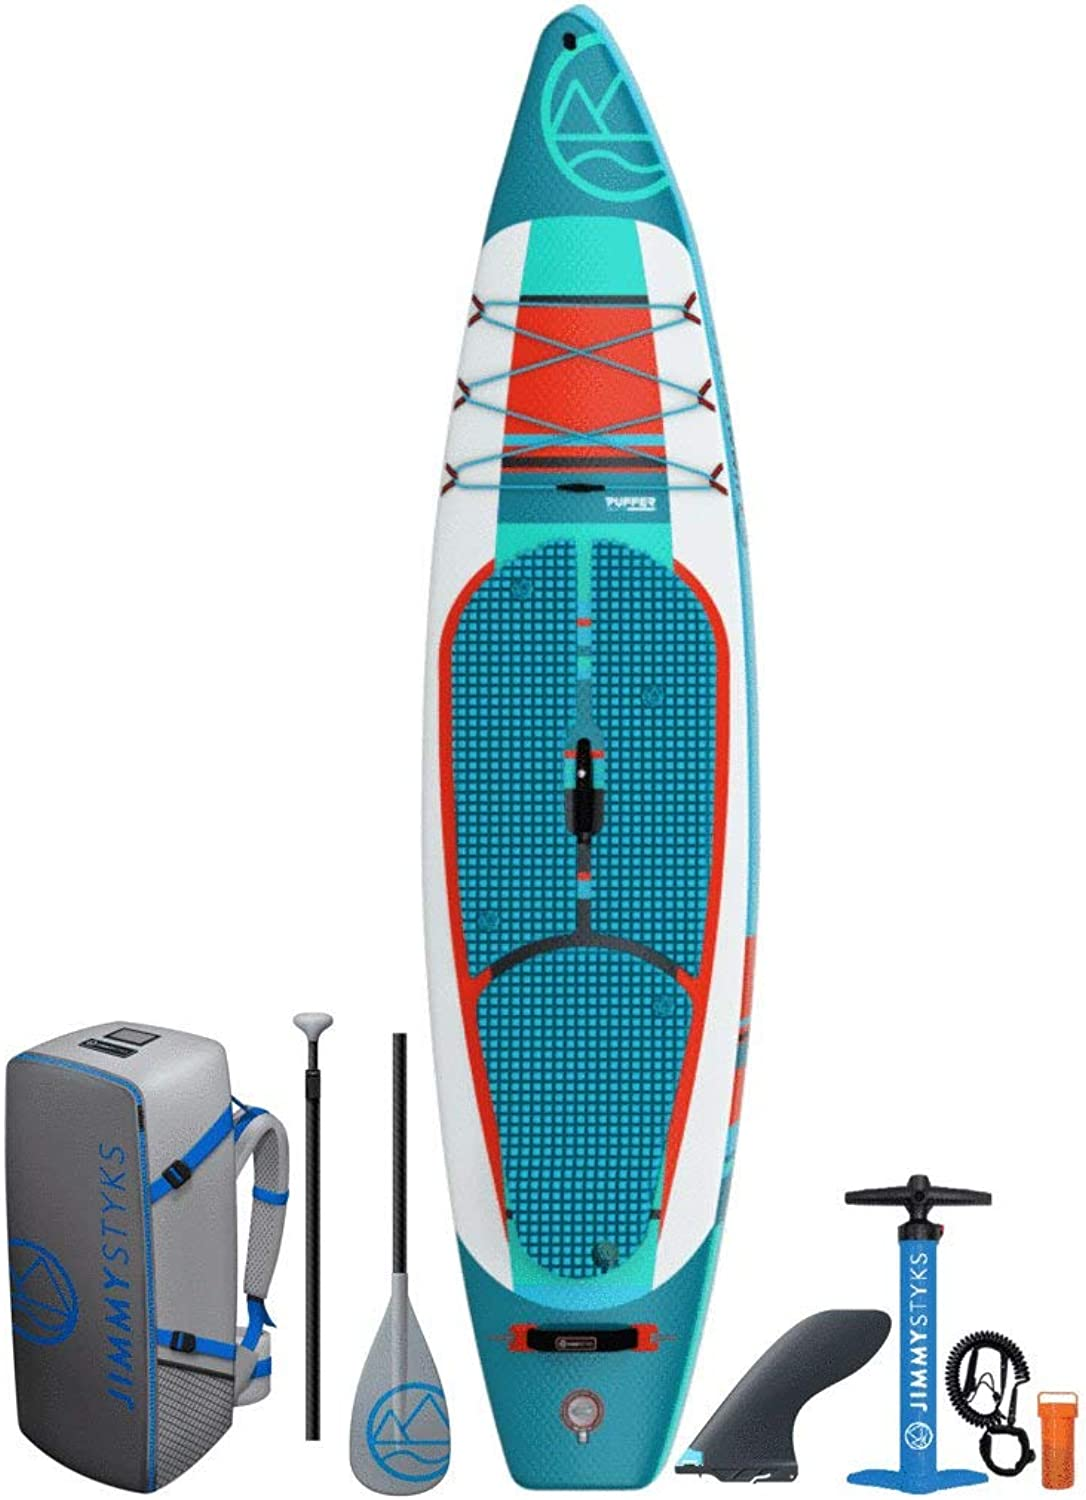 Jimmy Styks Inflatable Blow Up Stand Up SUP Puffer Paddle Board w  Pump and Bag